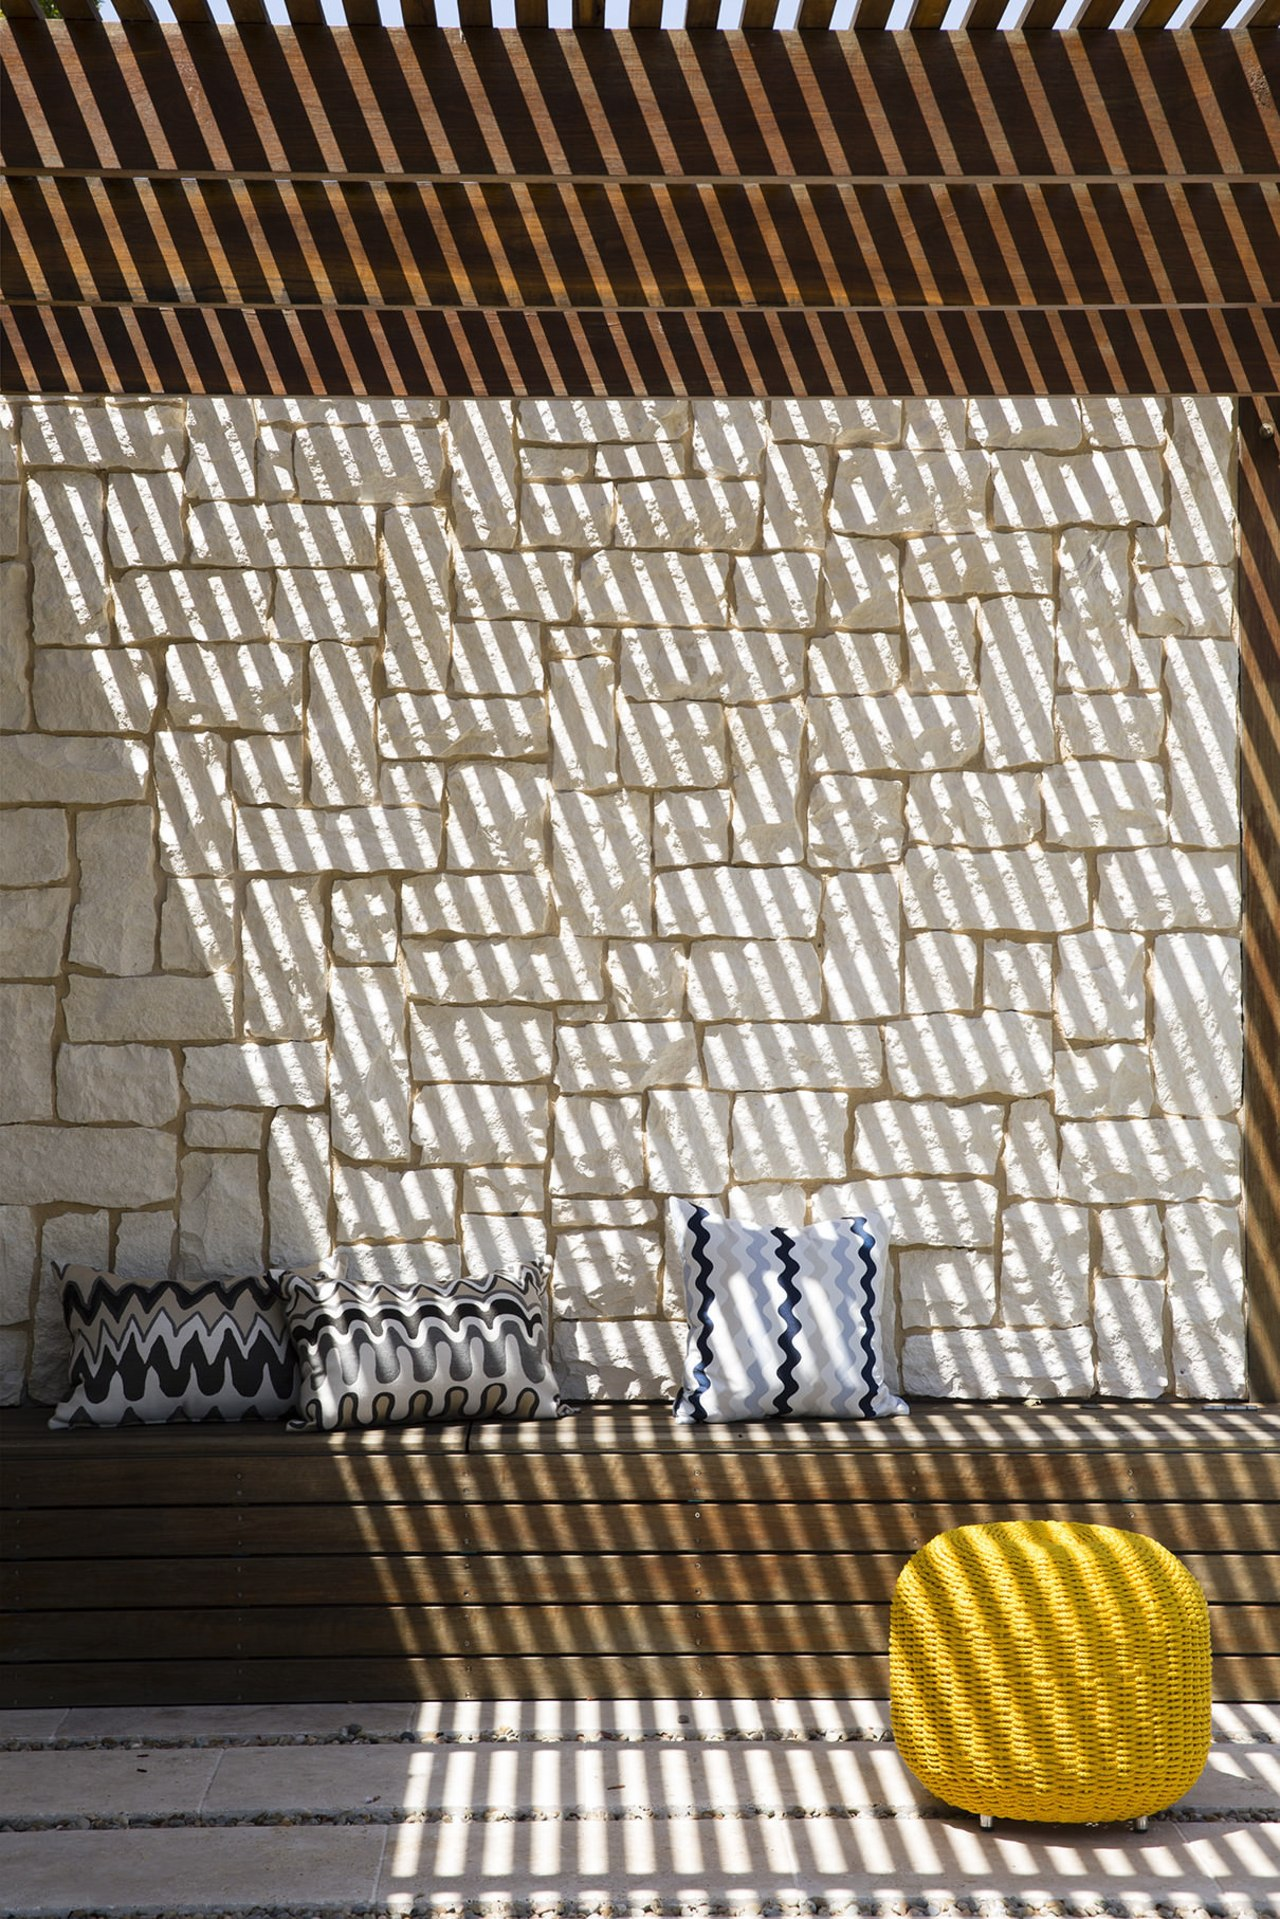 Accessorising helps your outdoor room become even more line, material, mesh, metal, net, pattern, gray